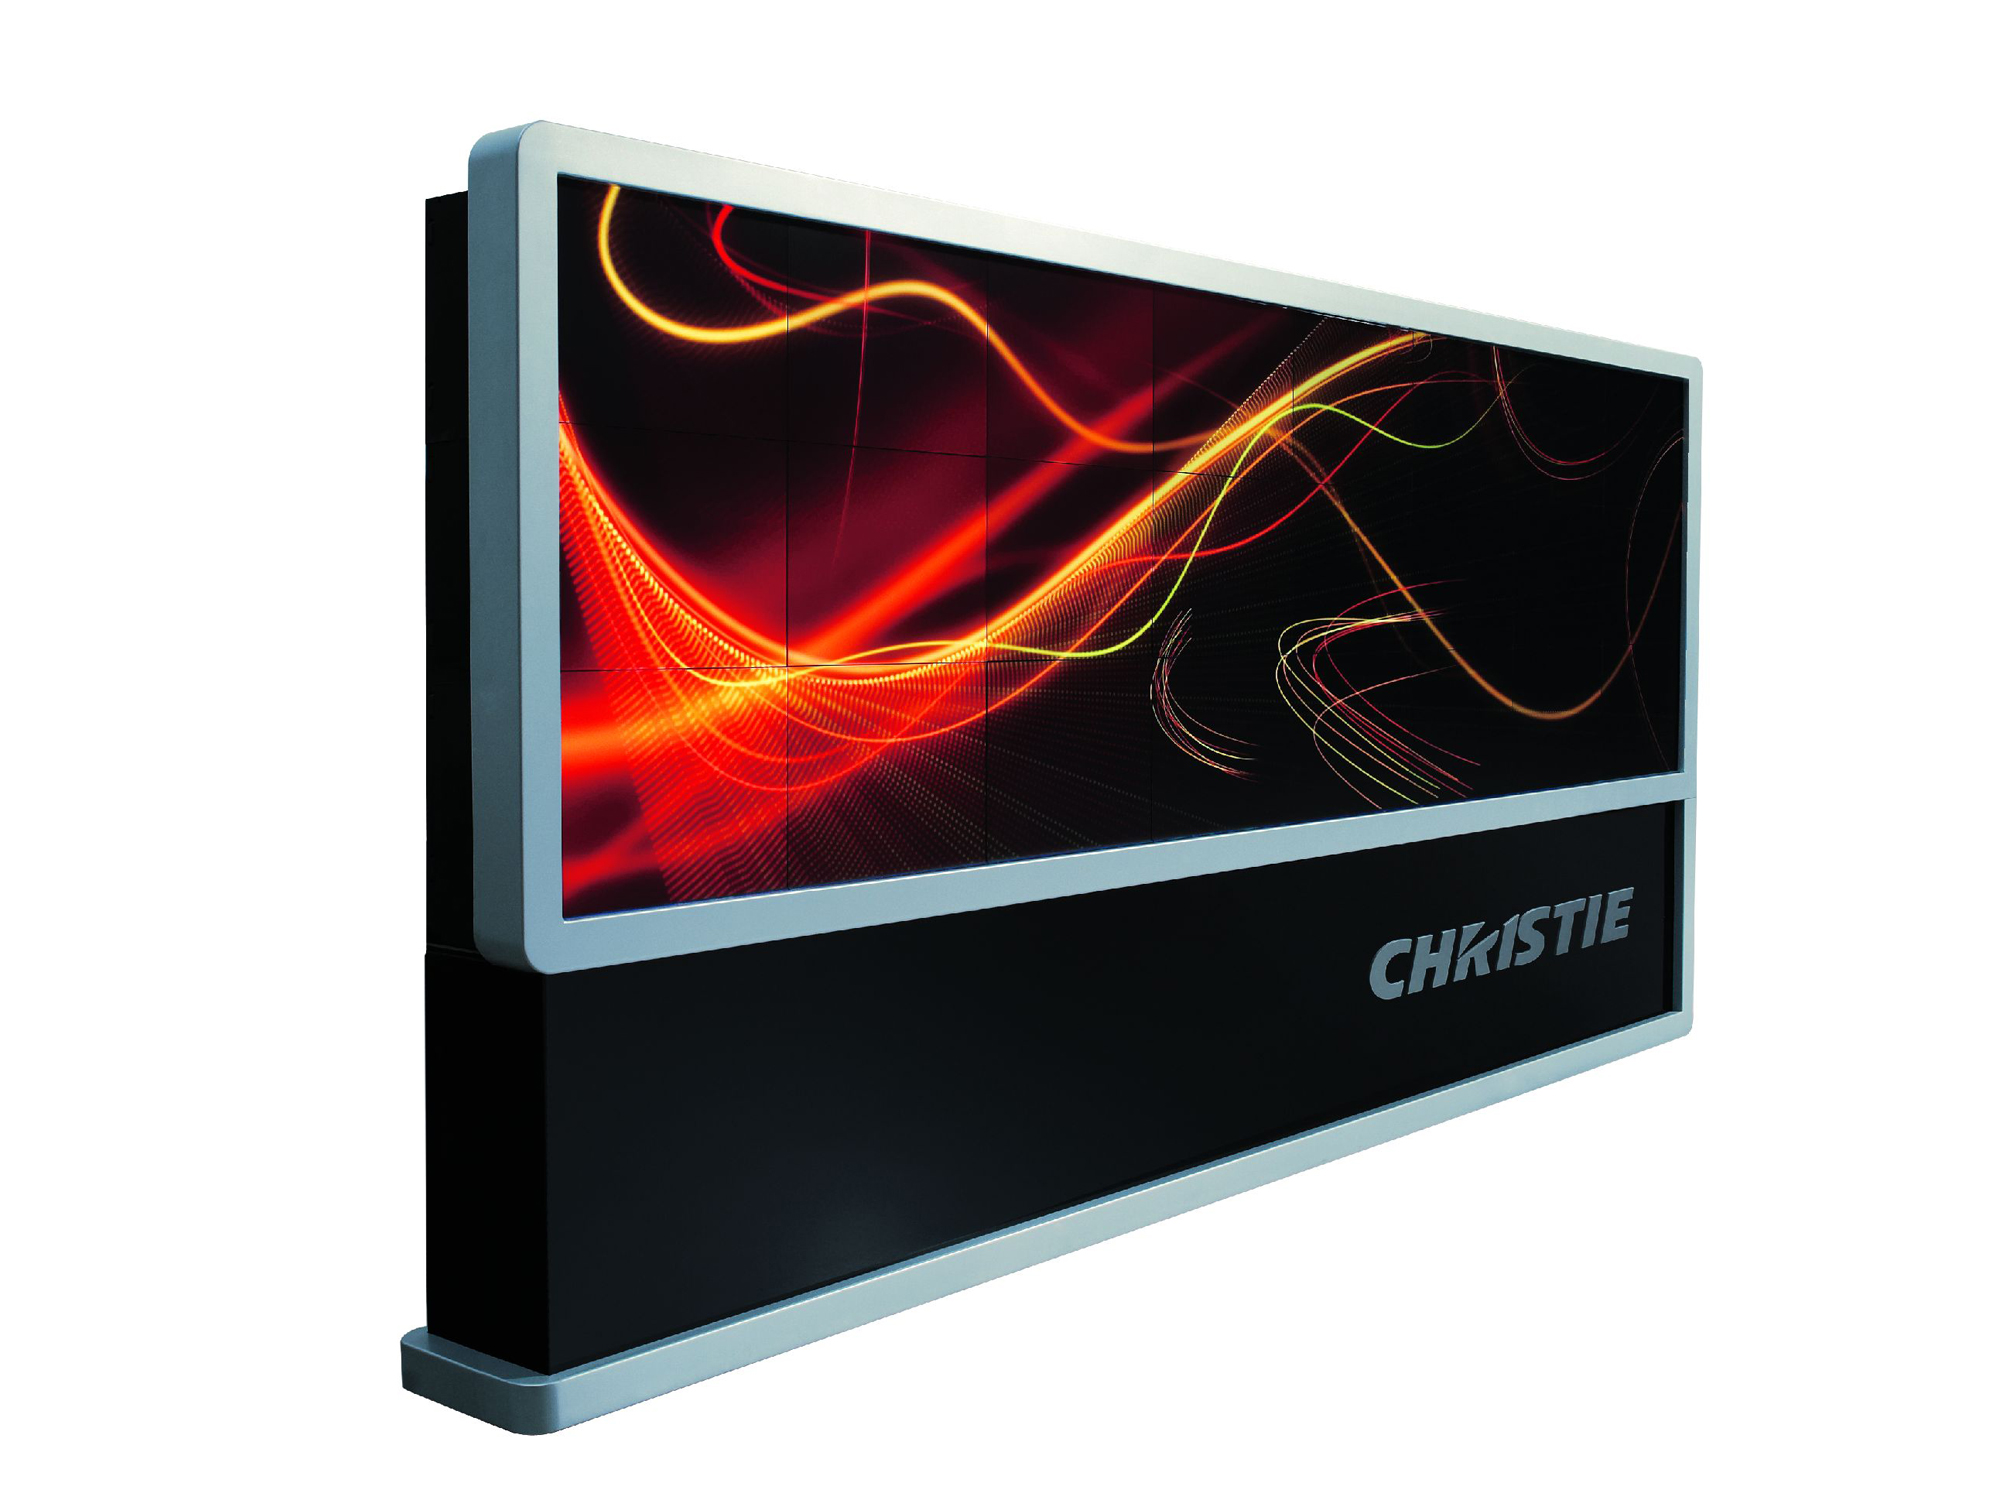 /globalassets/.catalog/products/images/microtiles/gallery/christie-microtiles-digital-signage-video-walls-image13.jpg